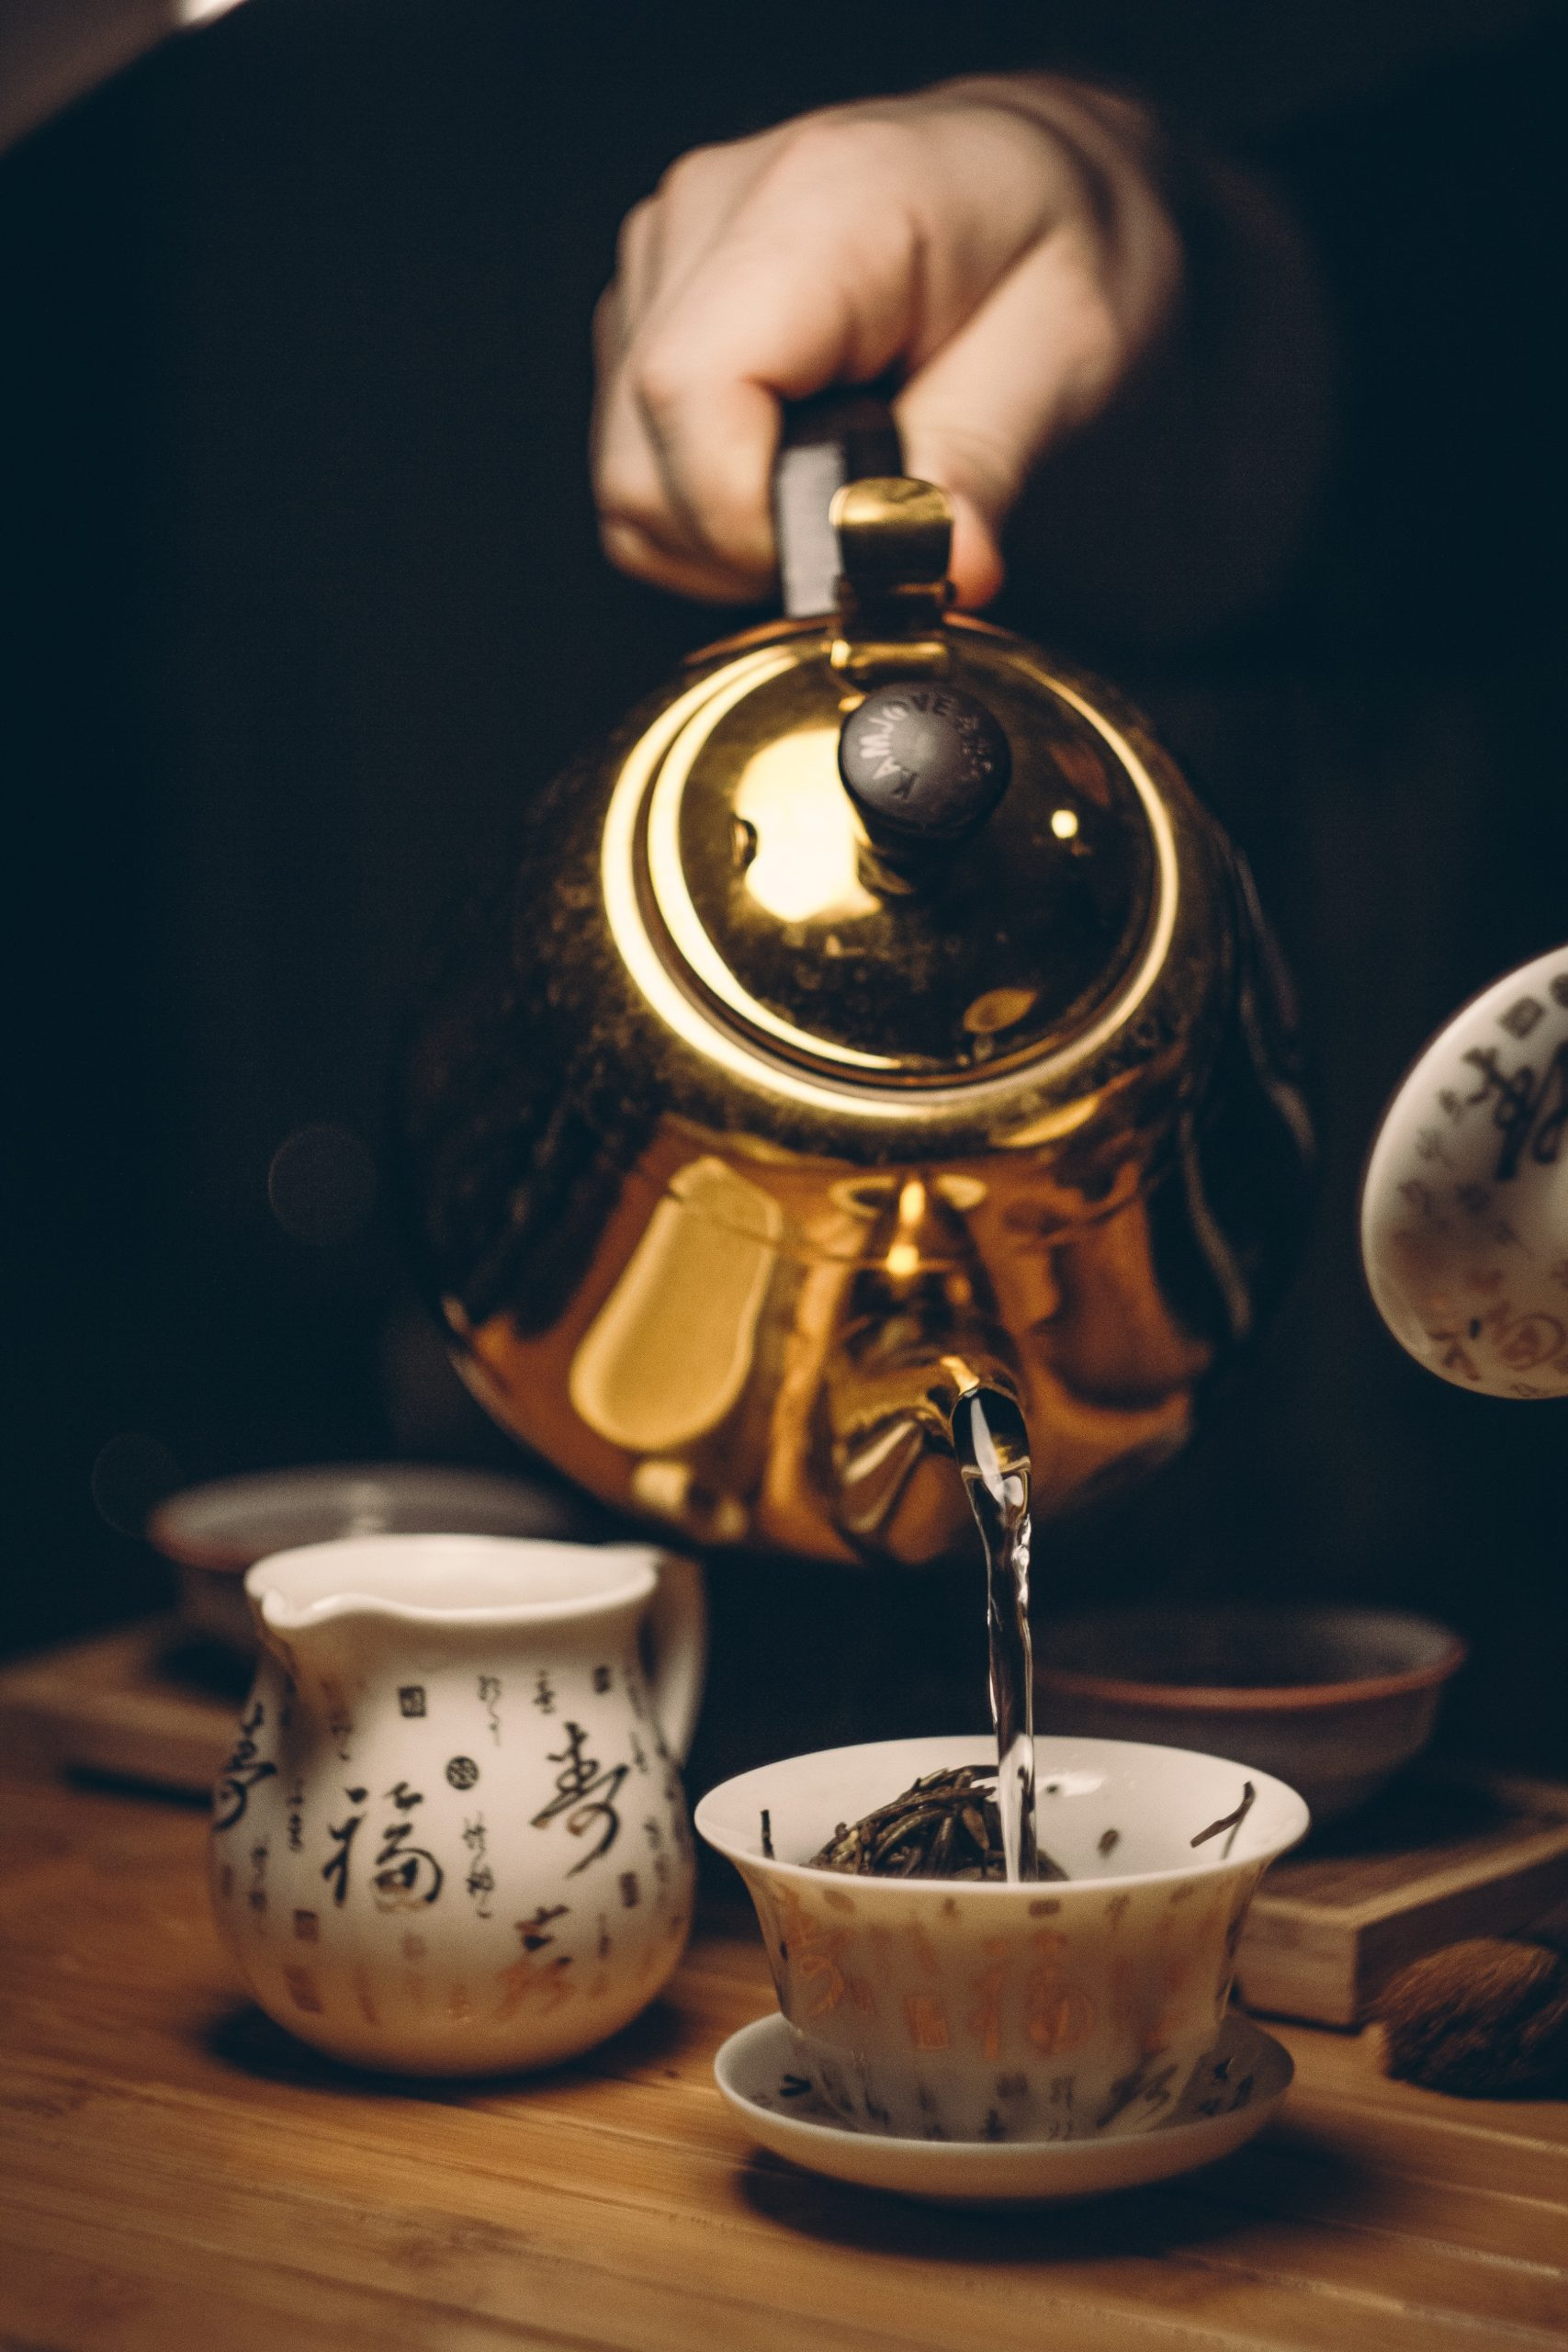 Person Holding Gold Teapot Pouring Into White Ceramic Teacup (Image Courtesy of Nikolay Osmachko)